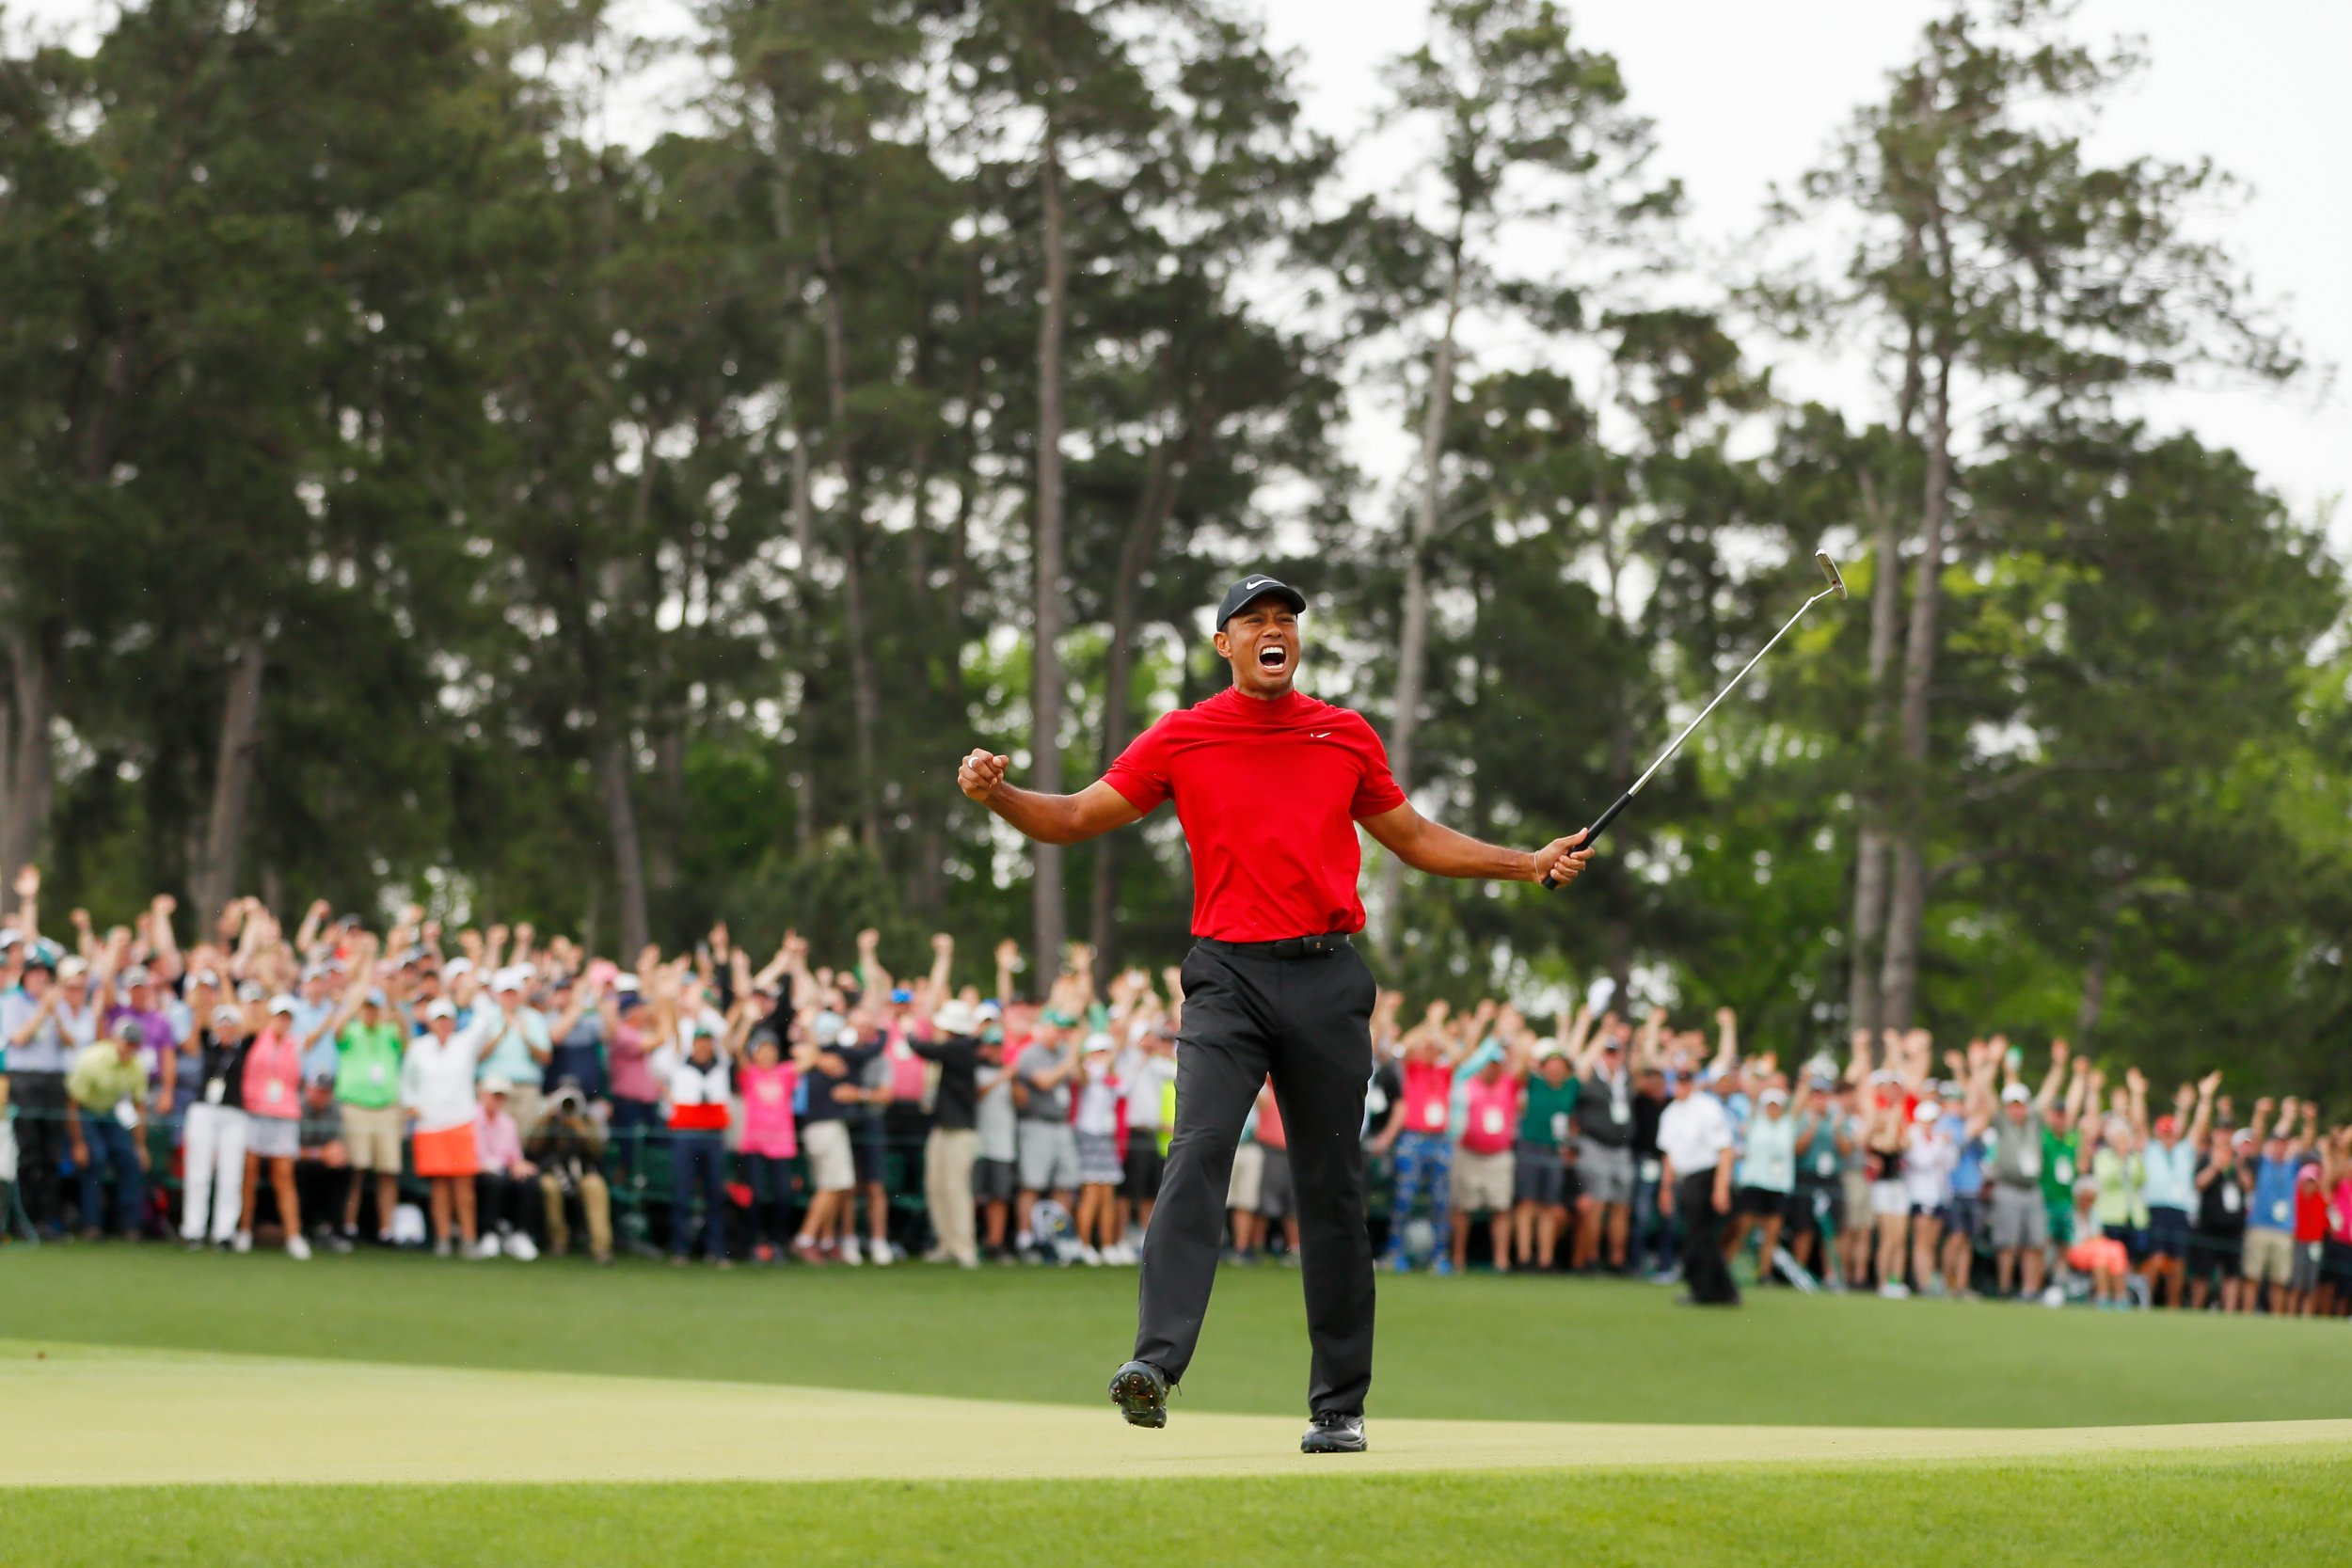 Bettor Wins $1.19 Million On Tiger Woods Winning The Masters